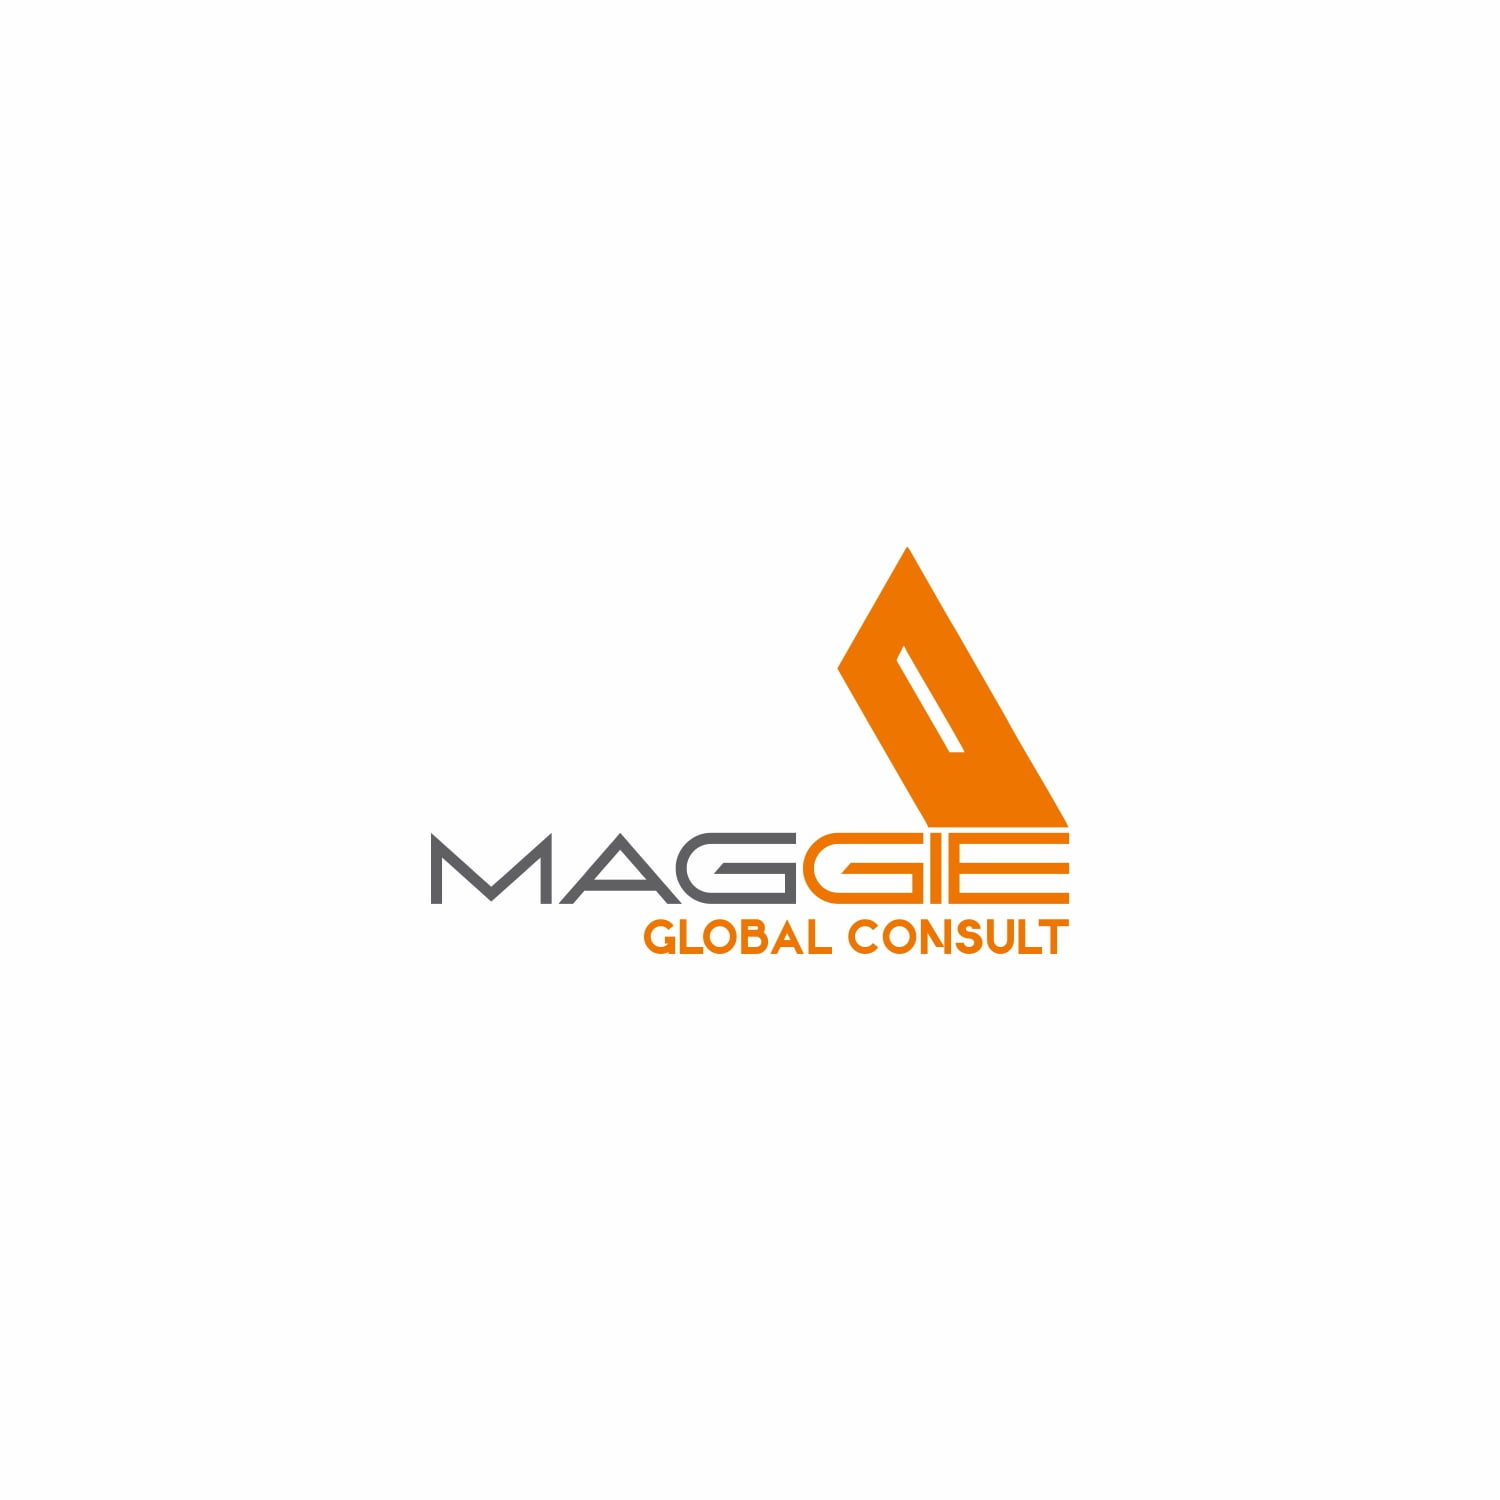 Maggie Global Consult